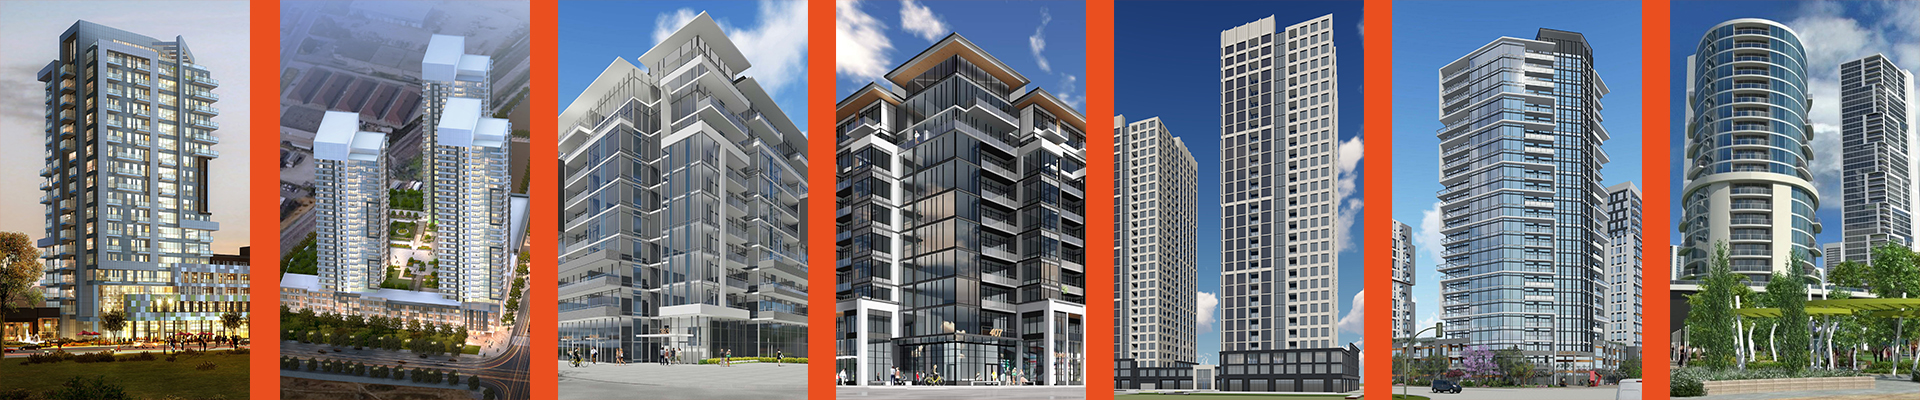 Korsiak Urban Planning - High Rise Development Portfolio